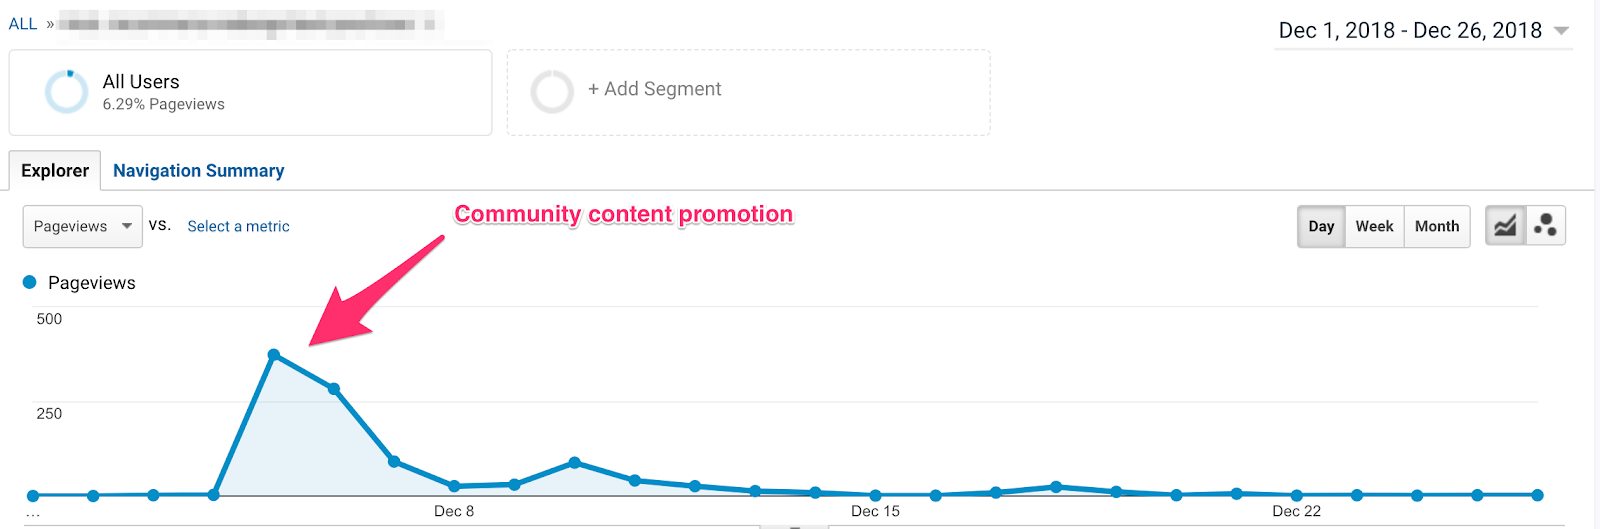 communitycontentpromotionresults